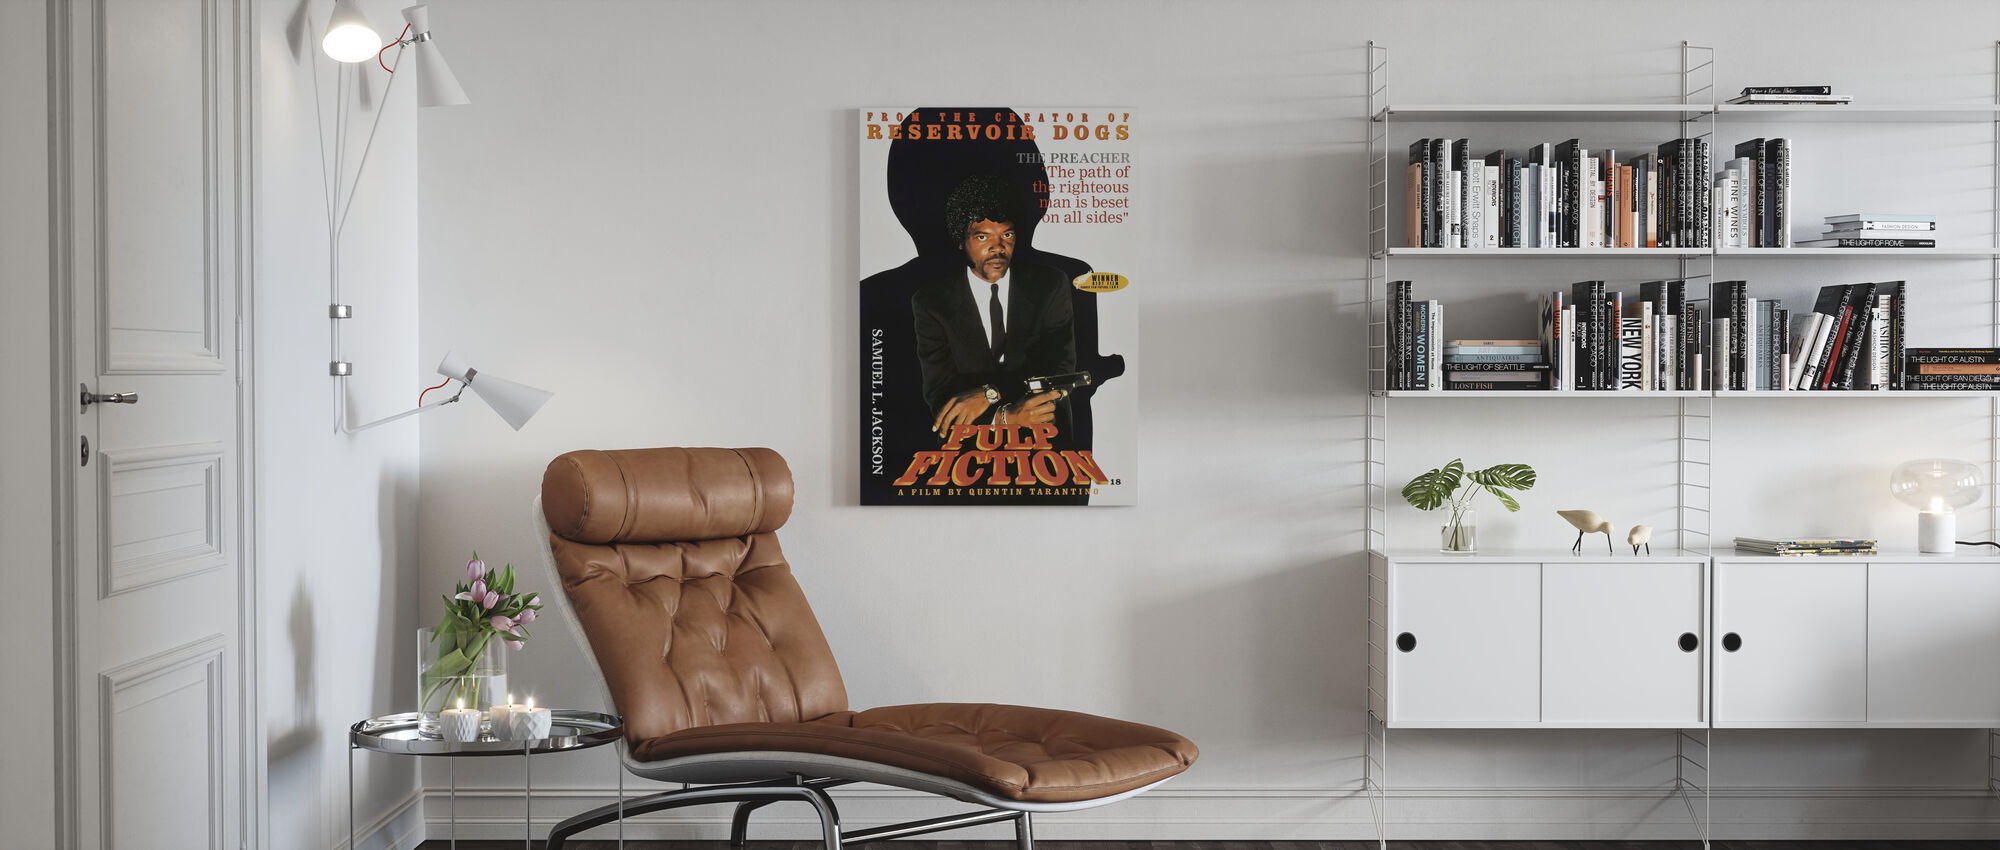 Samuel L Jackson in Pulp Fiction - Canvas print - Living Room